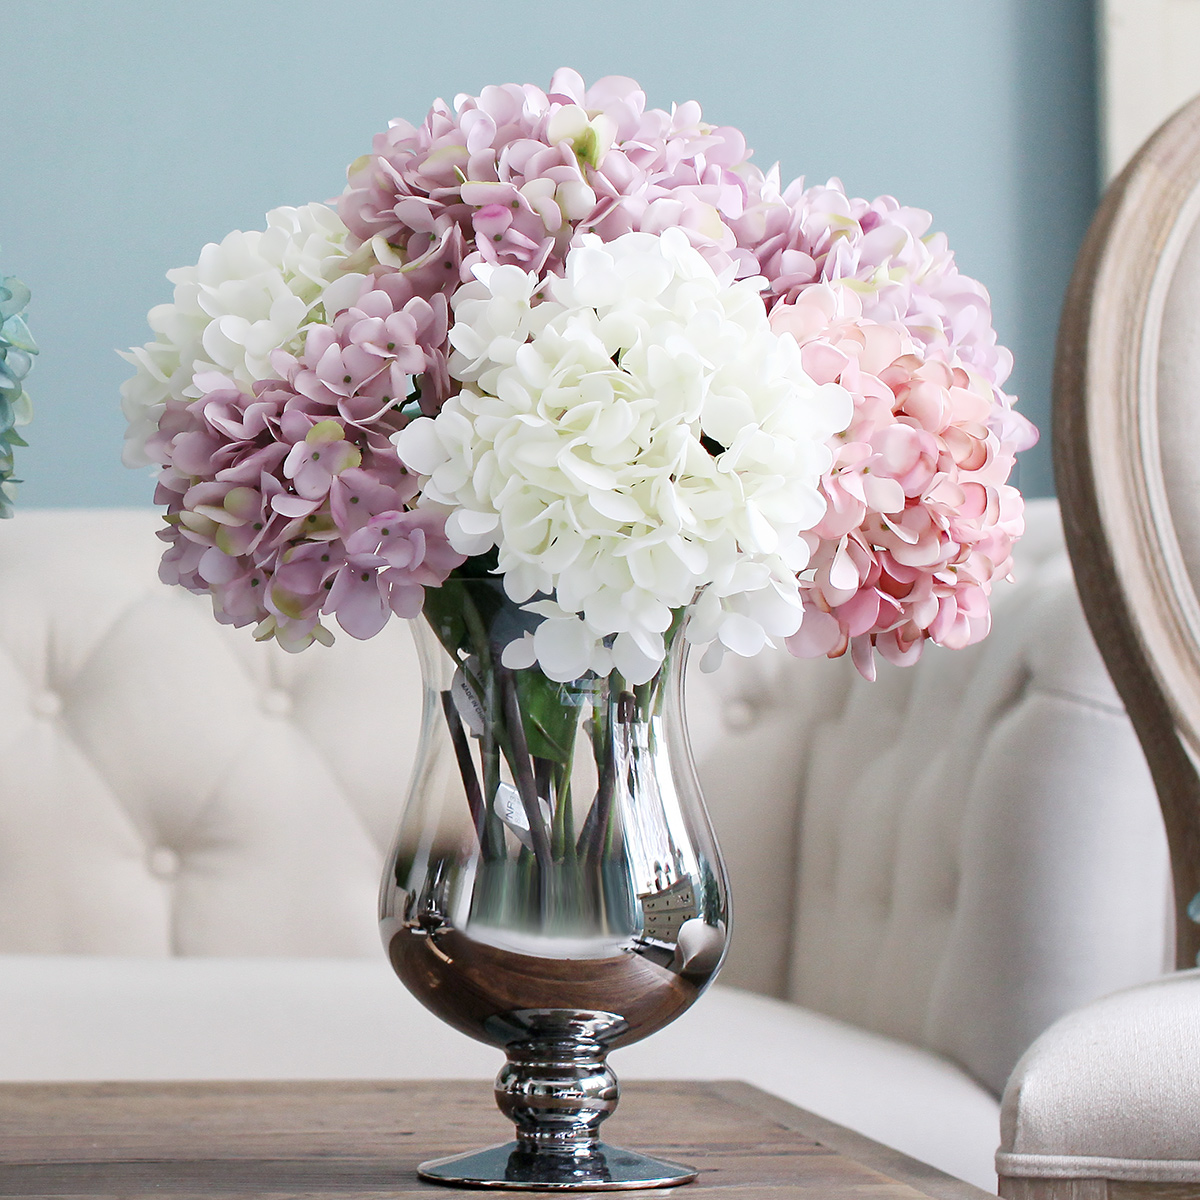 1pcs Wedding Delicate Home Decor Bouquet Artificial Hydrangea ...